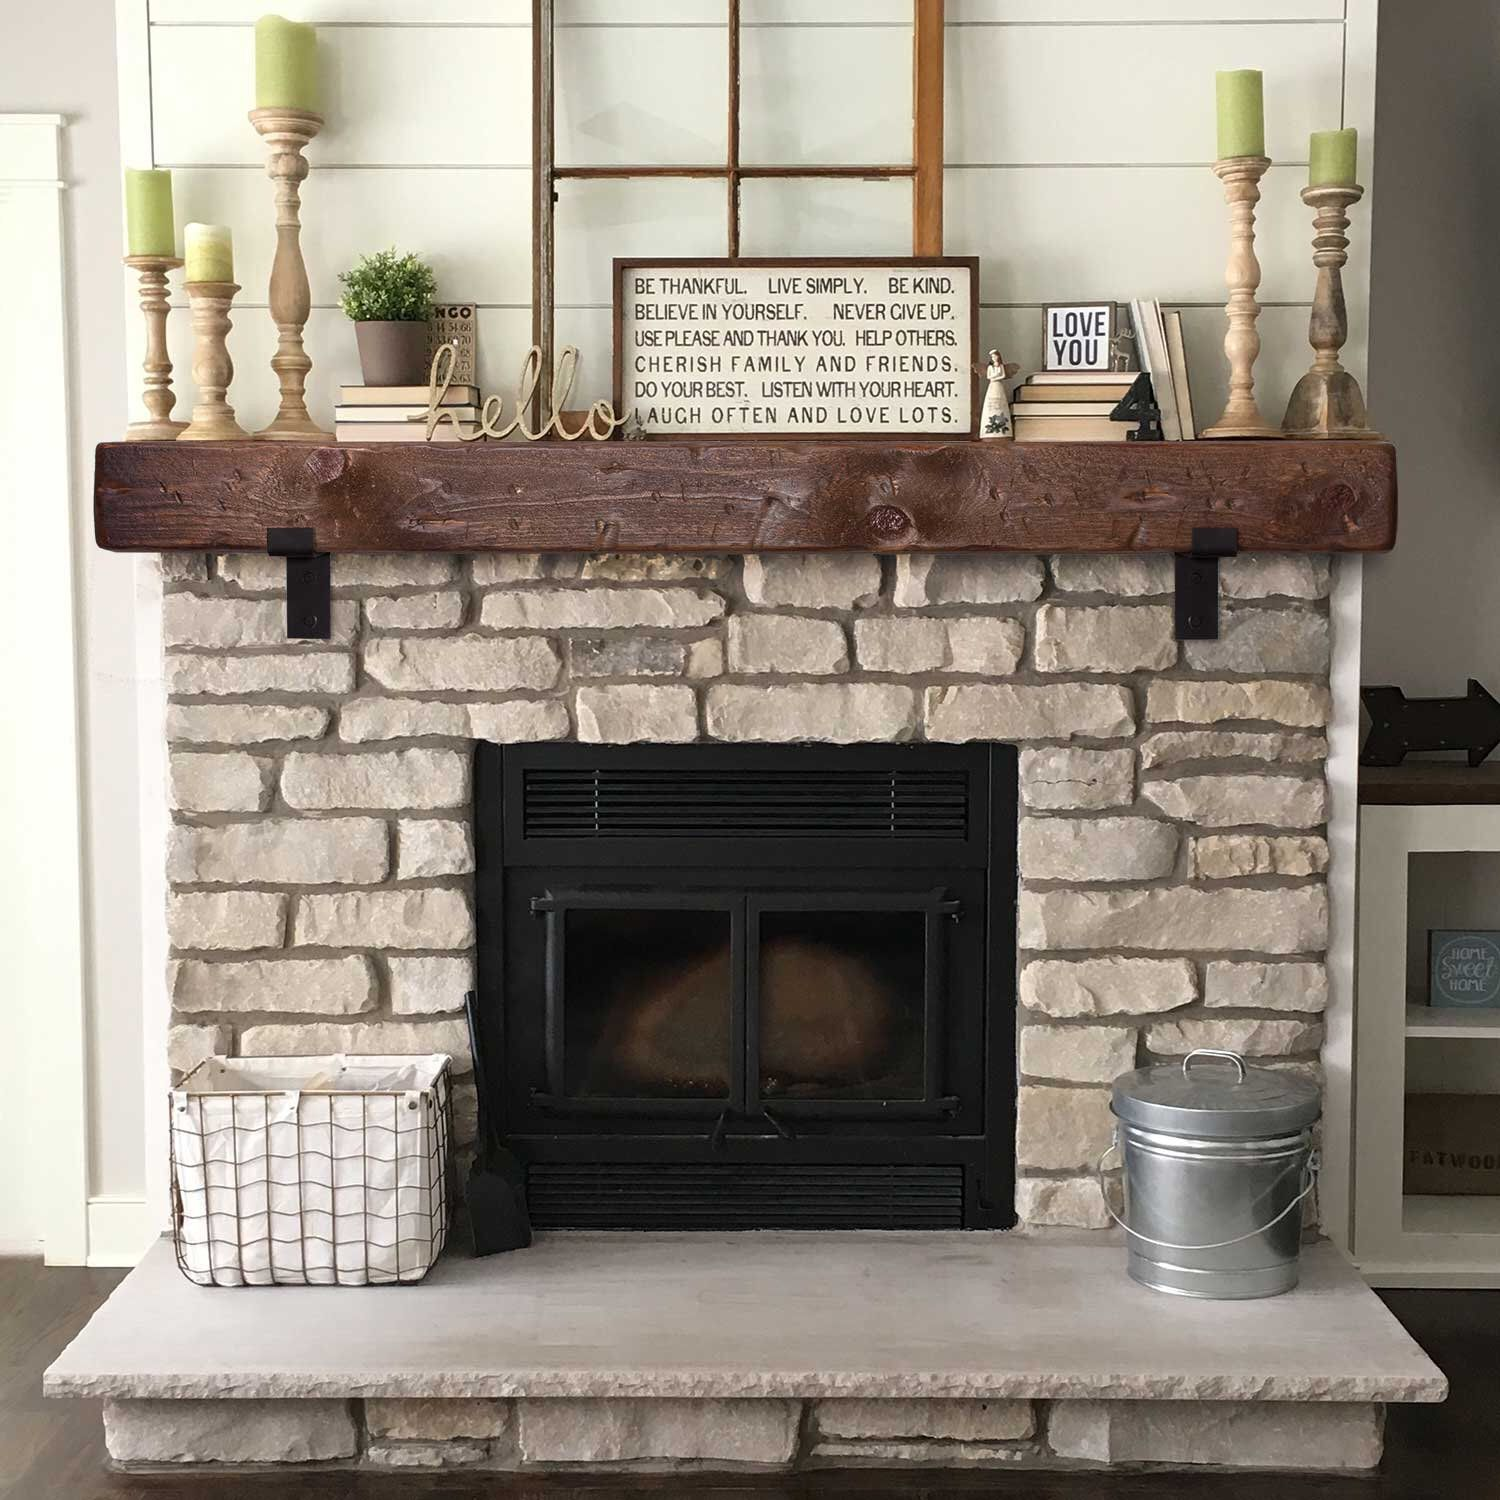 Mantel With Metal Brackets Fireplace Mantel 5x6 6x6 Or 6x8 Mantle Rustic Mantle Floating Barn Wood Barn Beam Custom Lengths Rustic Farmhouse Fireplace Farmhouse Fireplace Decor Home Fireplace